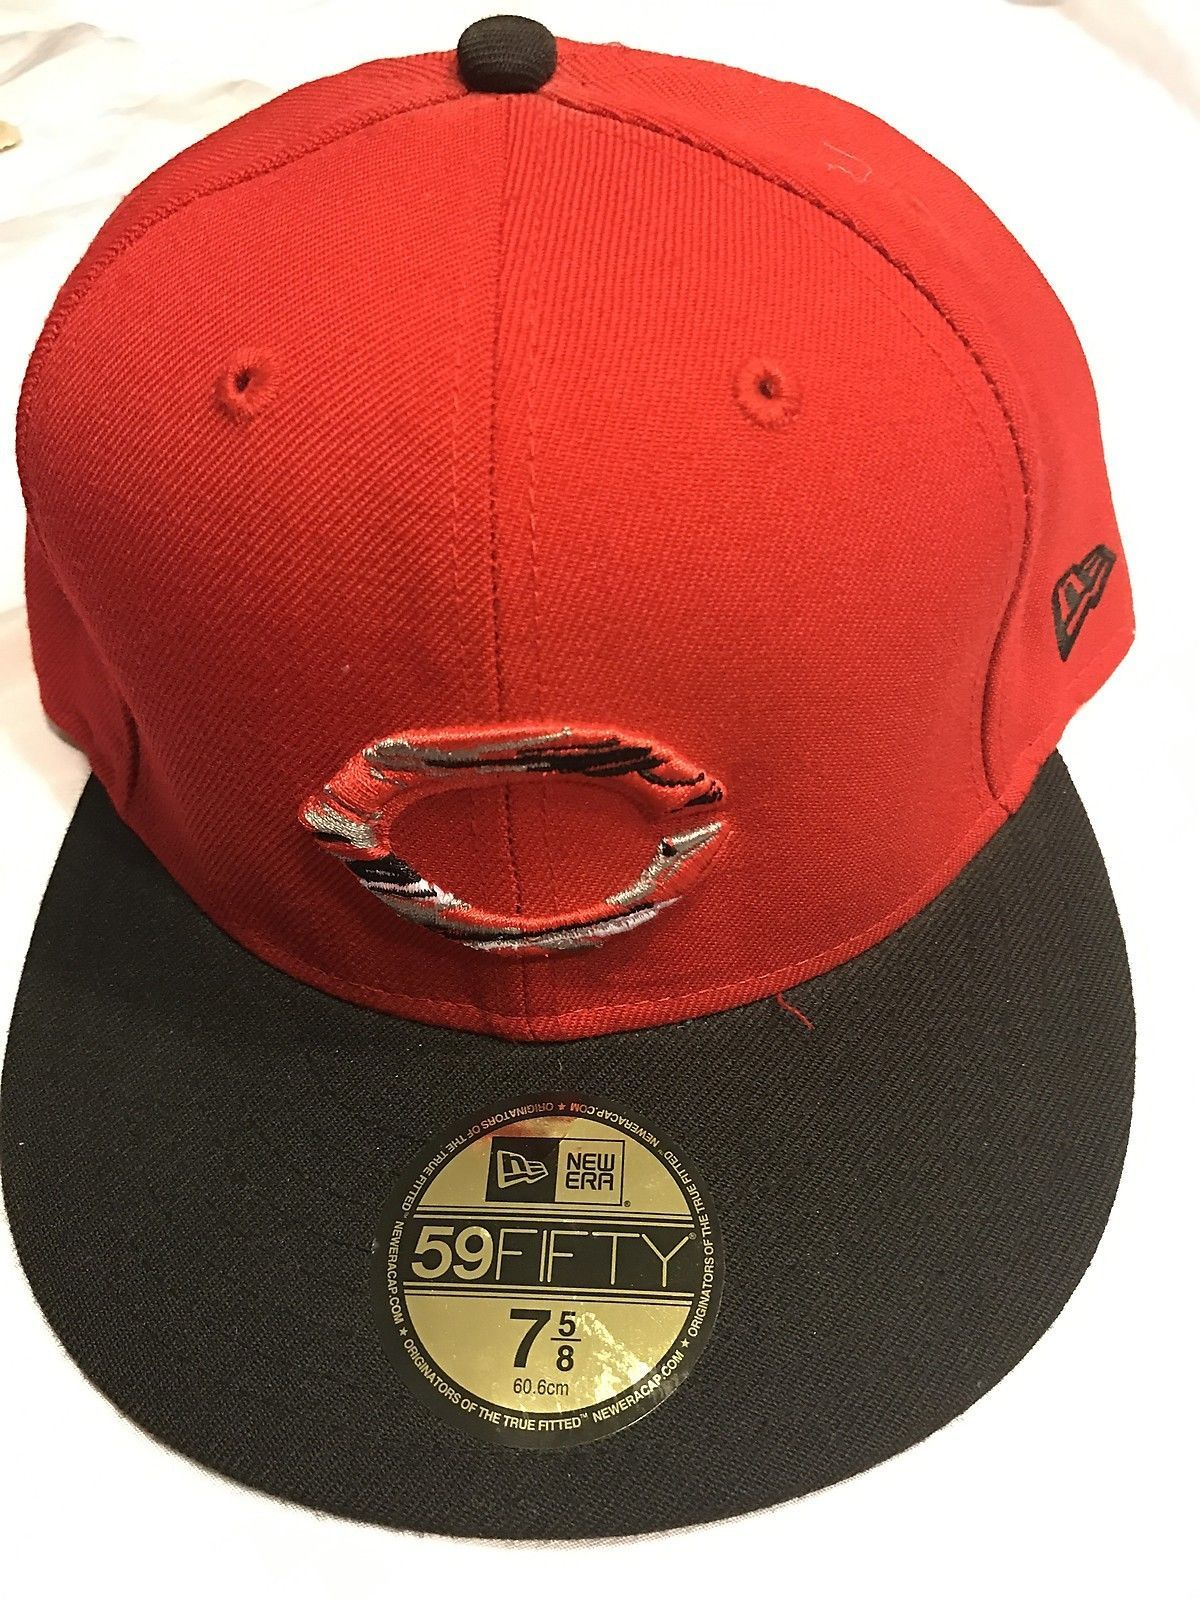 Team Cincinnati Reds MLB Cap size 7 1/8 New Era 59Fifty Red with black brim NWT